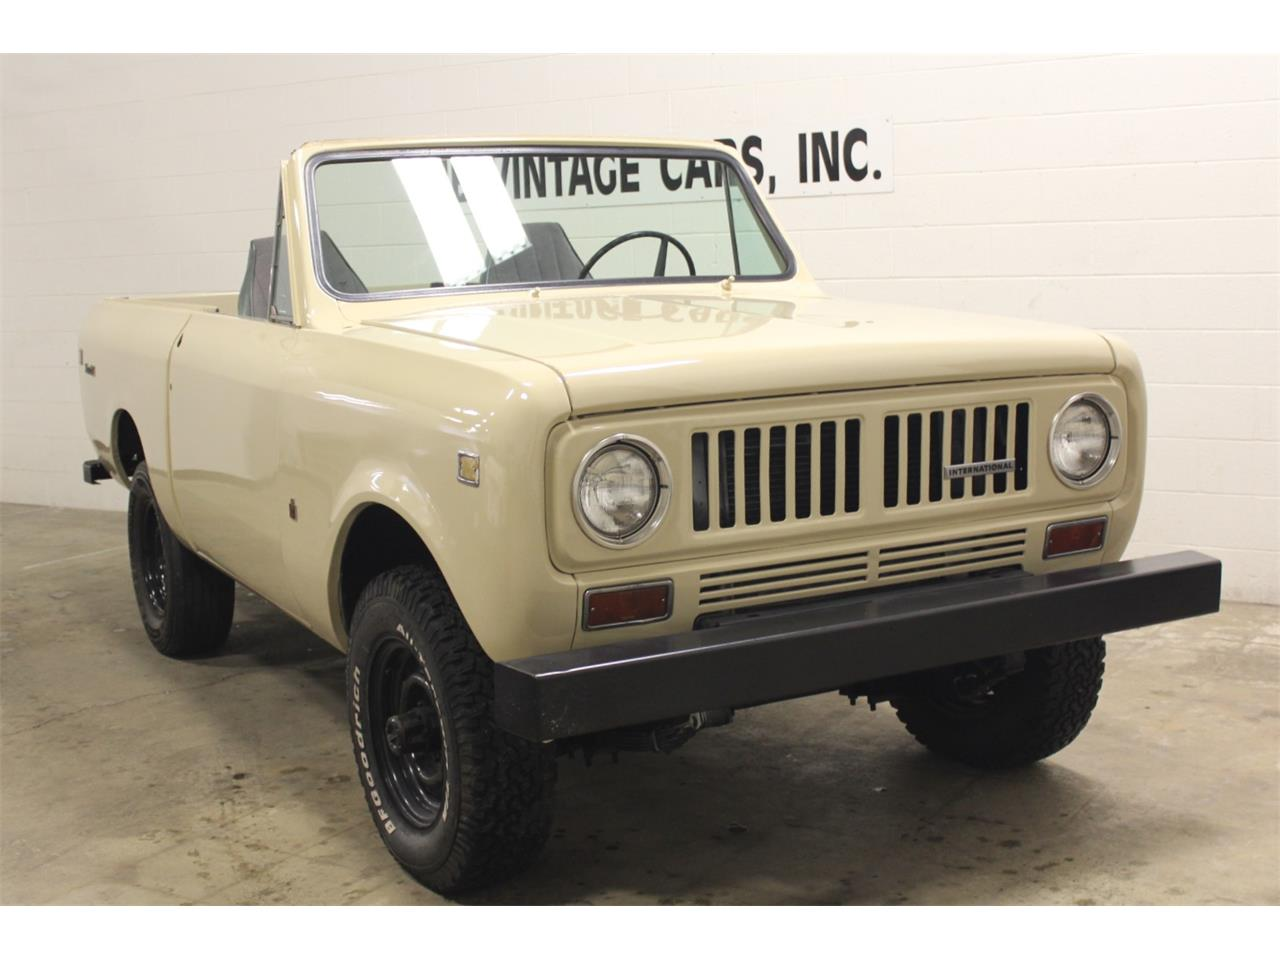 For Sale: 1977 International Harvester Scout II in Cleveland, Ohio